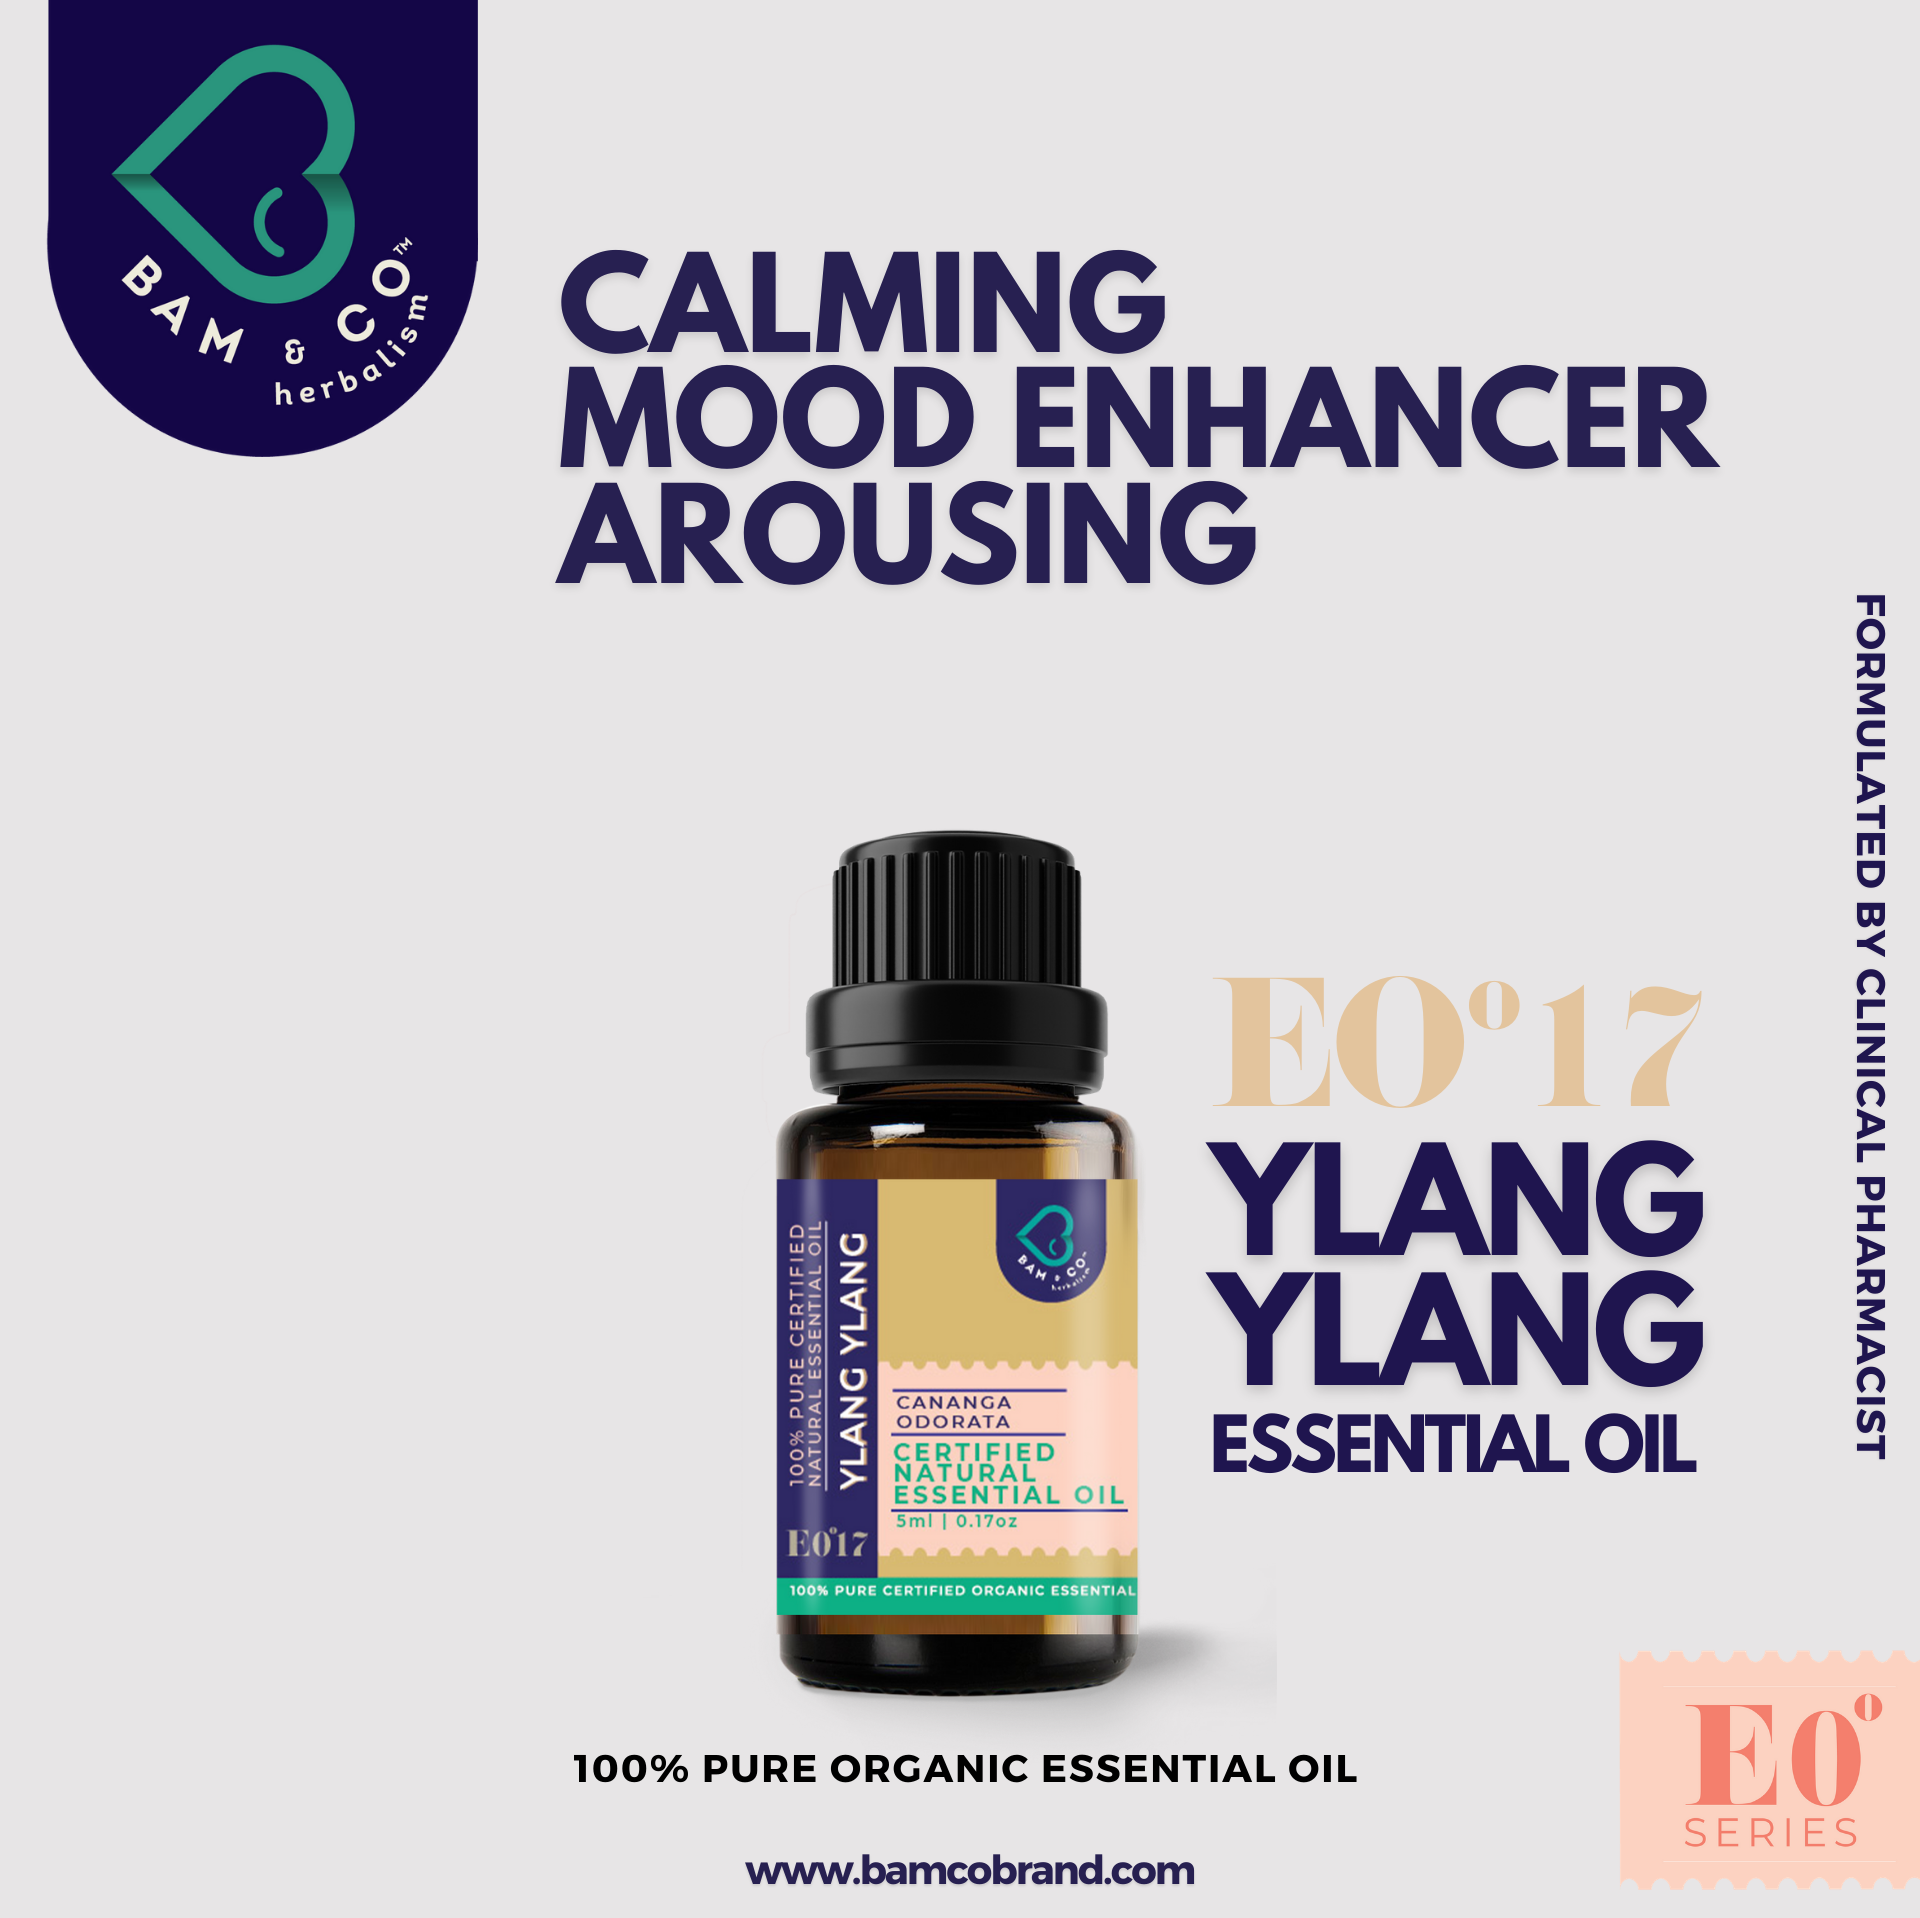 BAM & CO. YLANG YLANG CERTIFIED PURE ORGANIC ESSENTIAL OIL 5ML 10ML